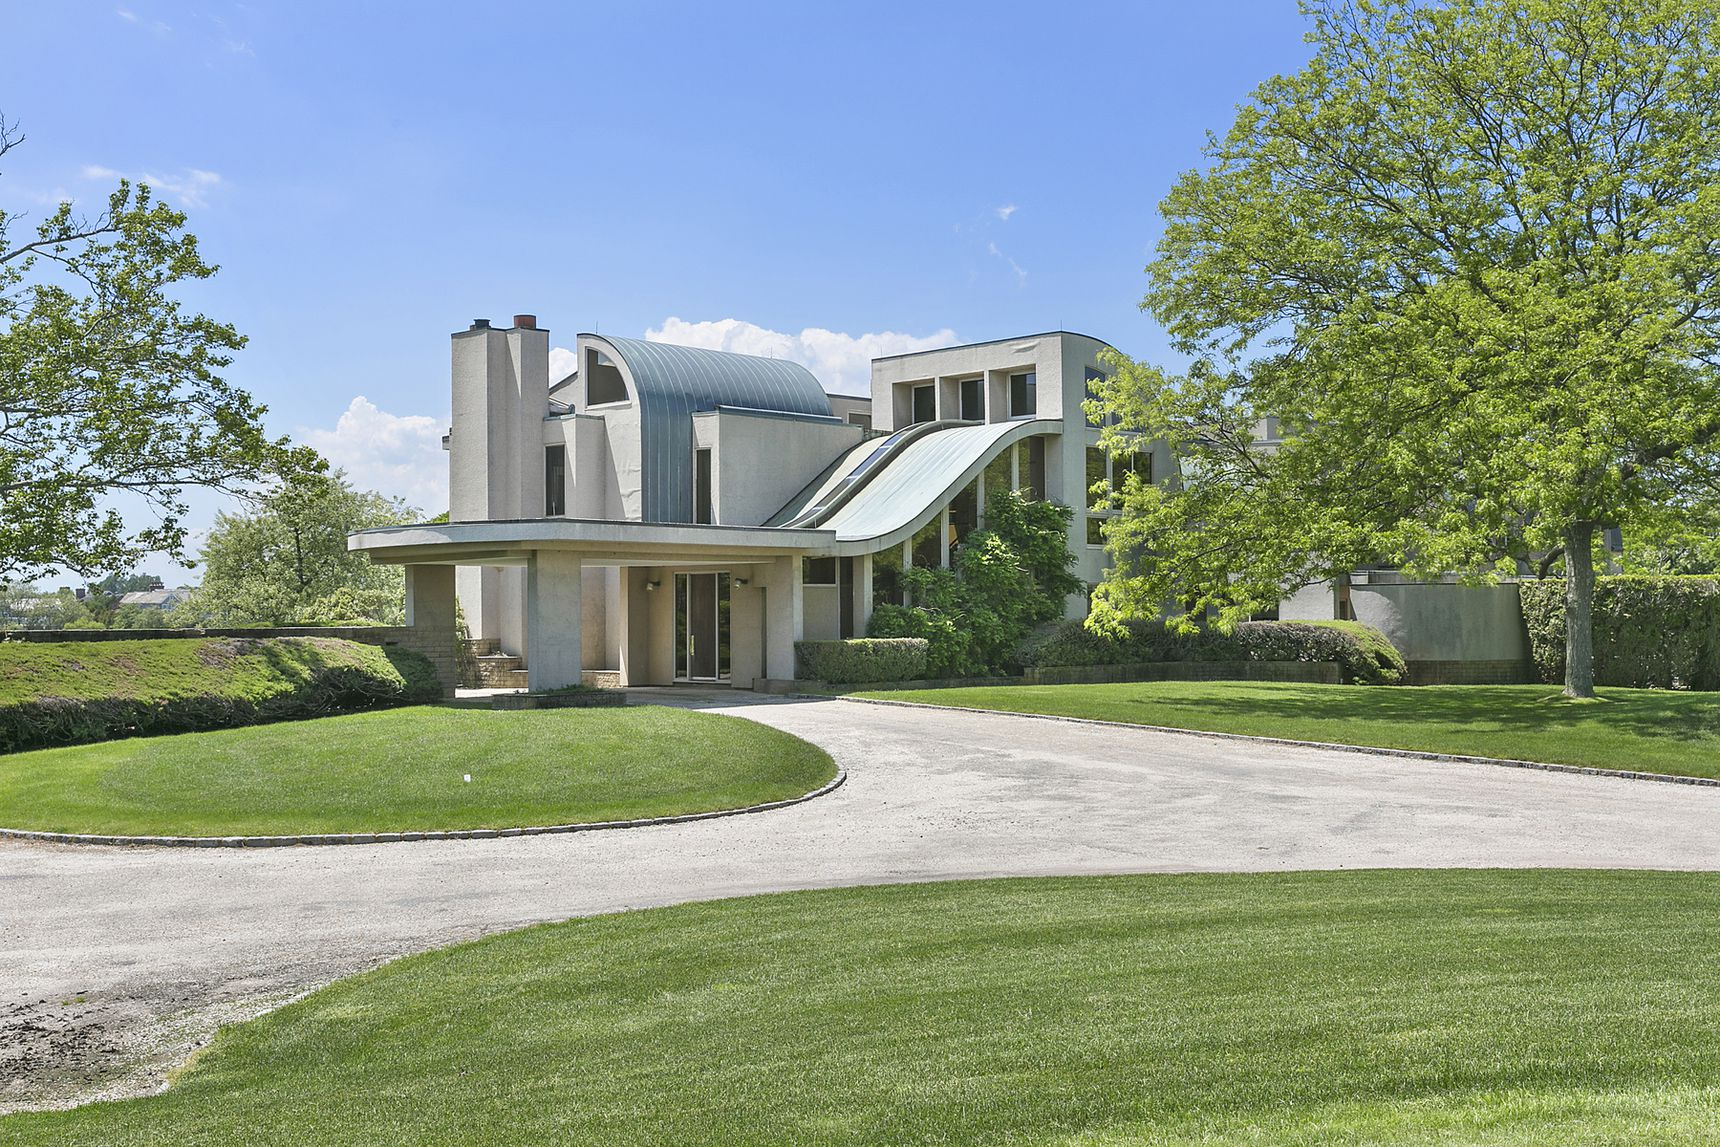 Tour The Grounds Of Morgan Hill Farm In Bridgehampton Which Just Sold For $14.9 Million